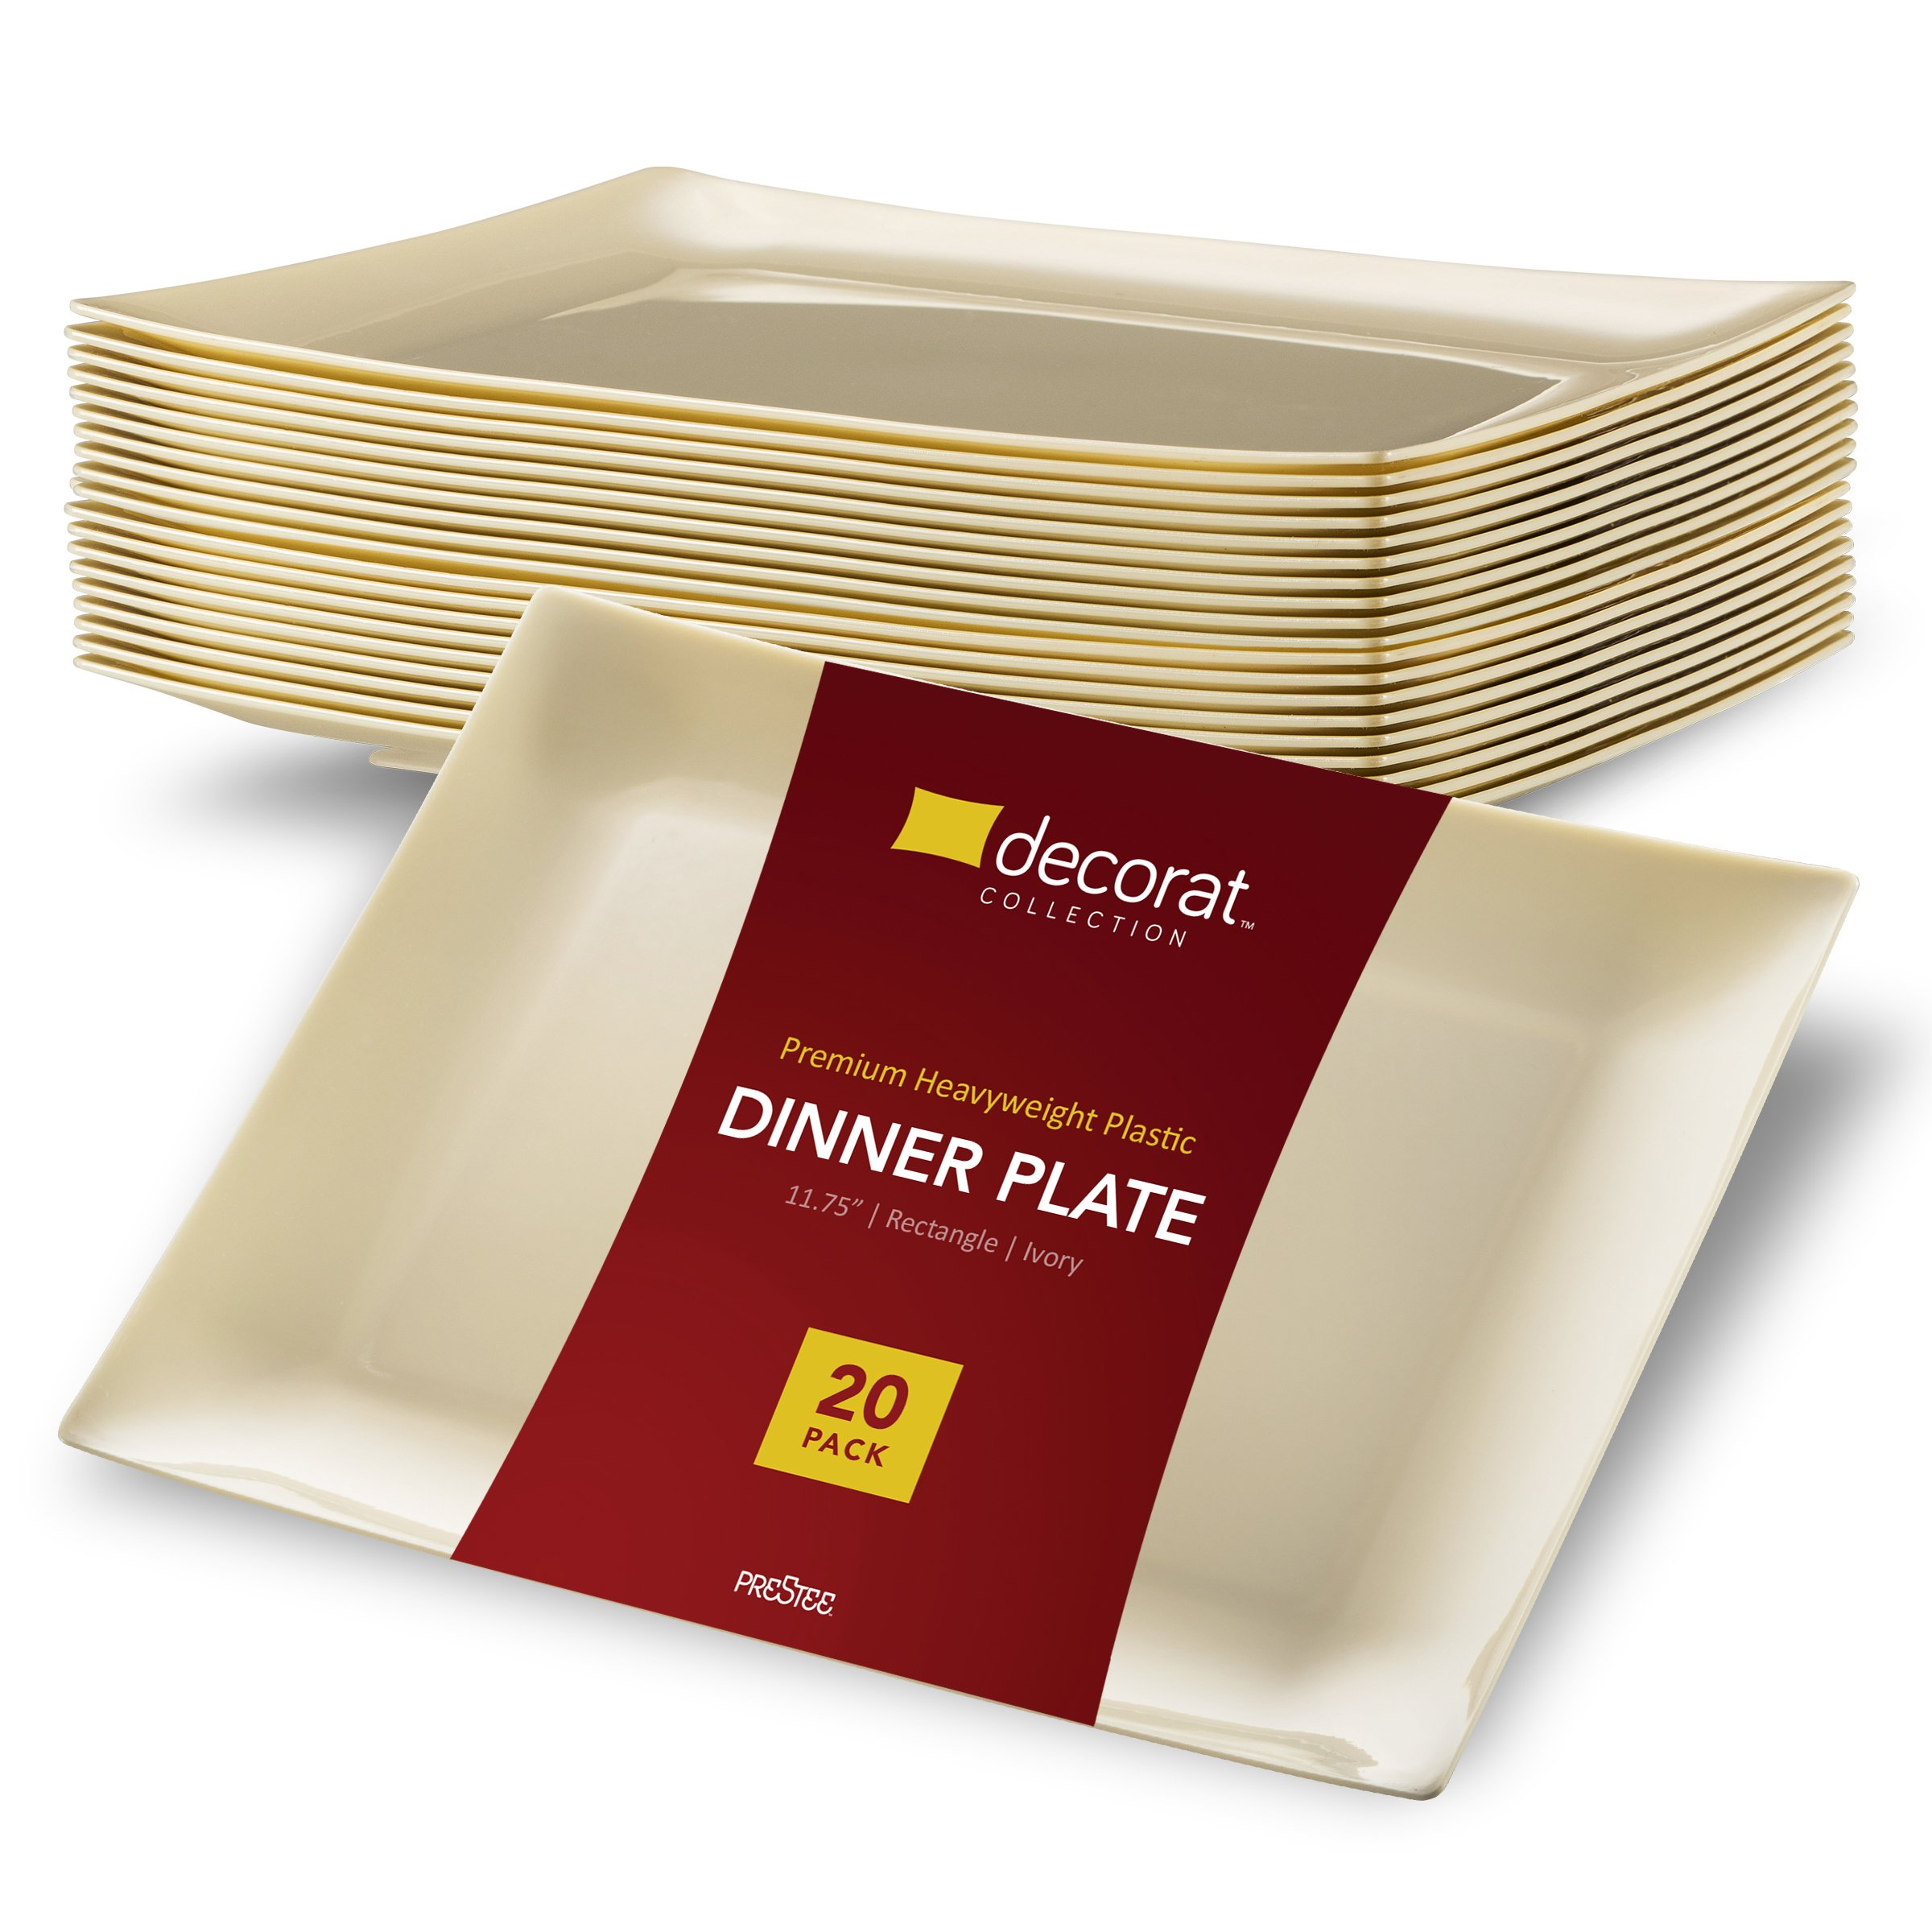 DECORAT PLASTIC PLATES / DINNER PLATES | 11.75 Inch Ivory Party Plates - 20 Pack | Rectangle Disposable Plates | Elegant & Fancy Heavy Duty Party Supplies Plates for all Holidays & Occasions